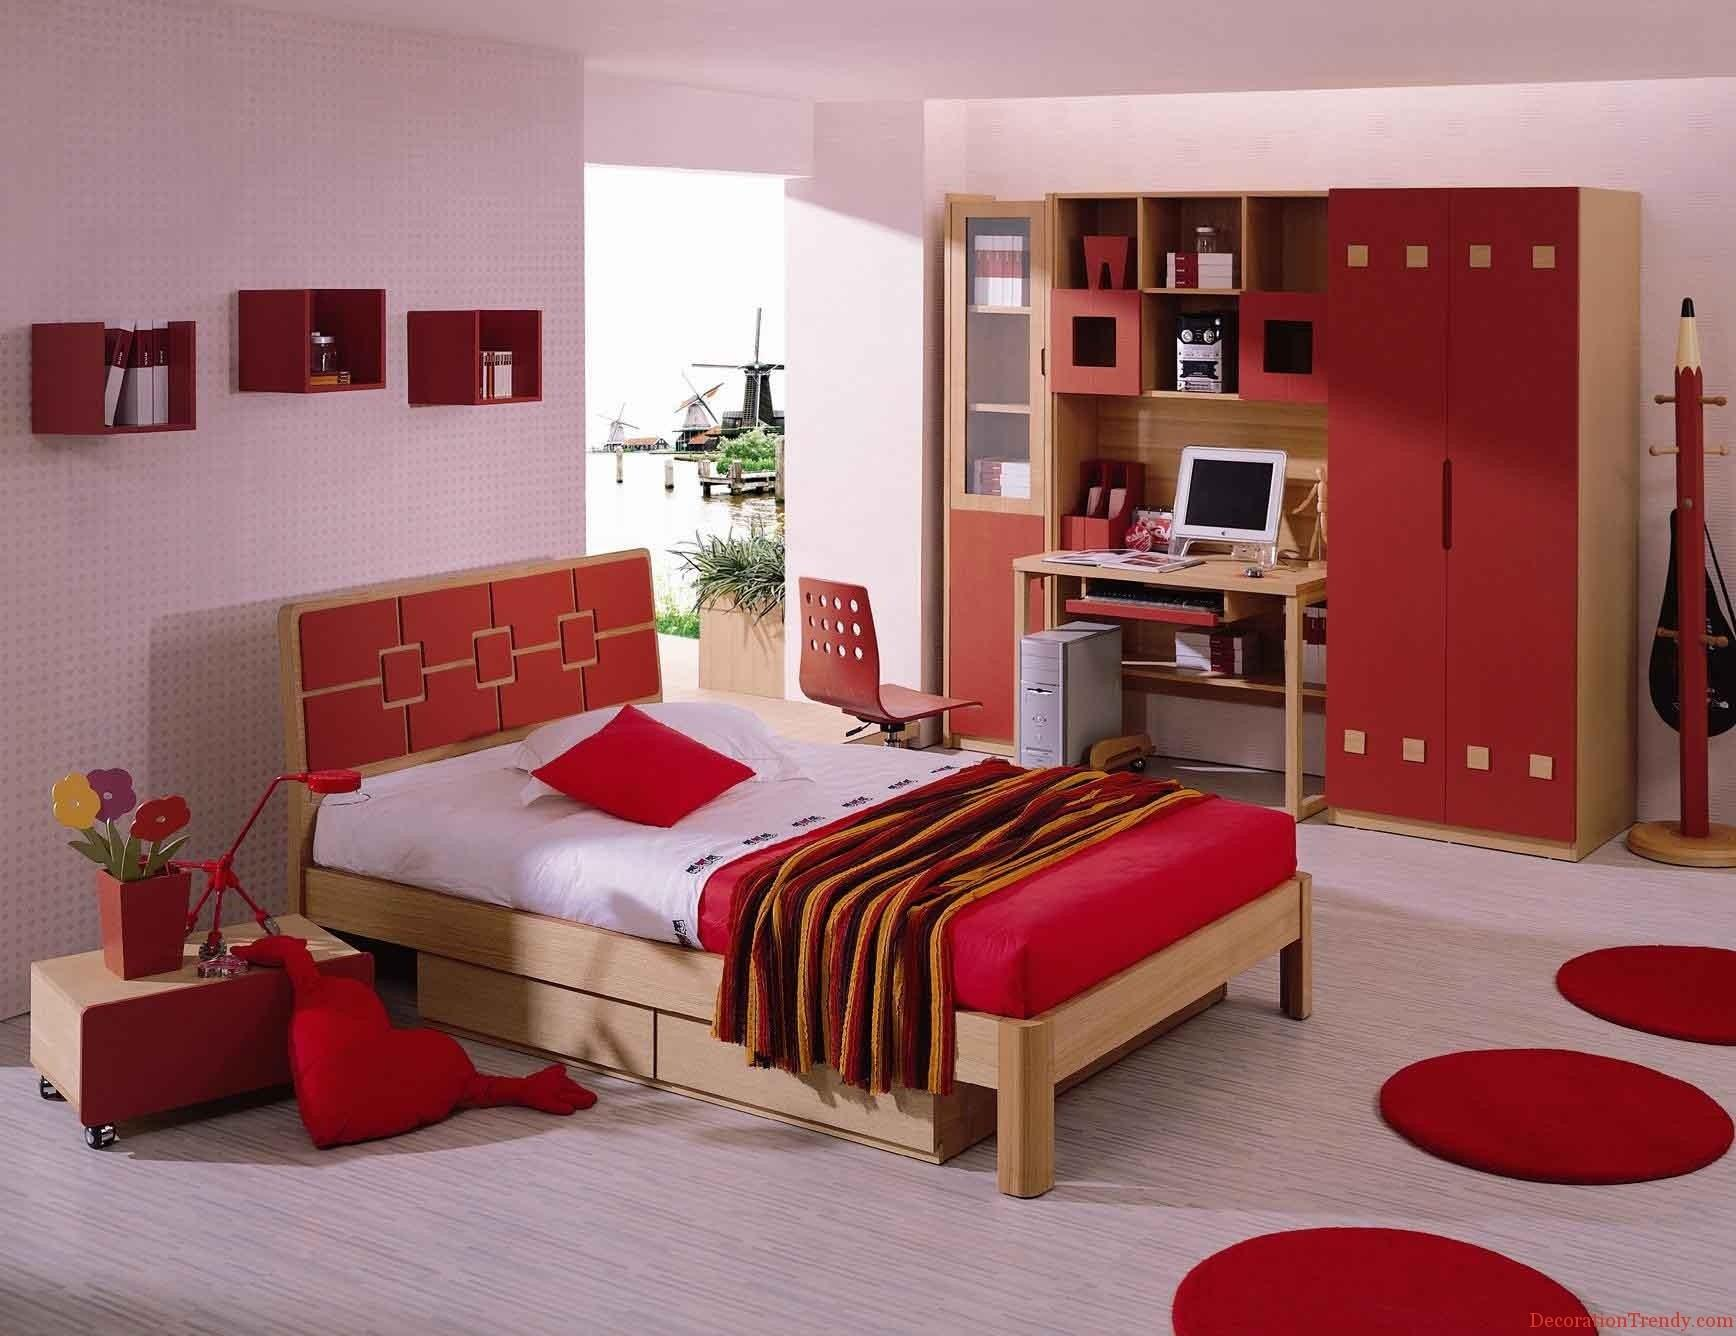 Miscellaneous Modern White Red Interior Design Room Living